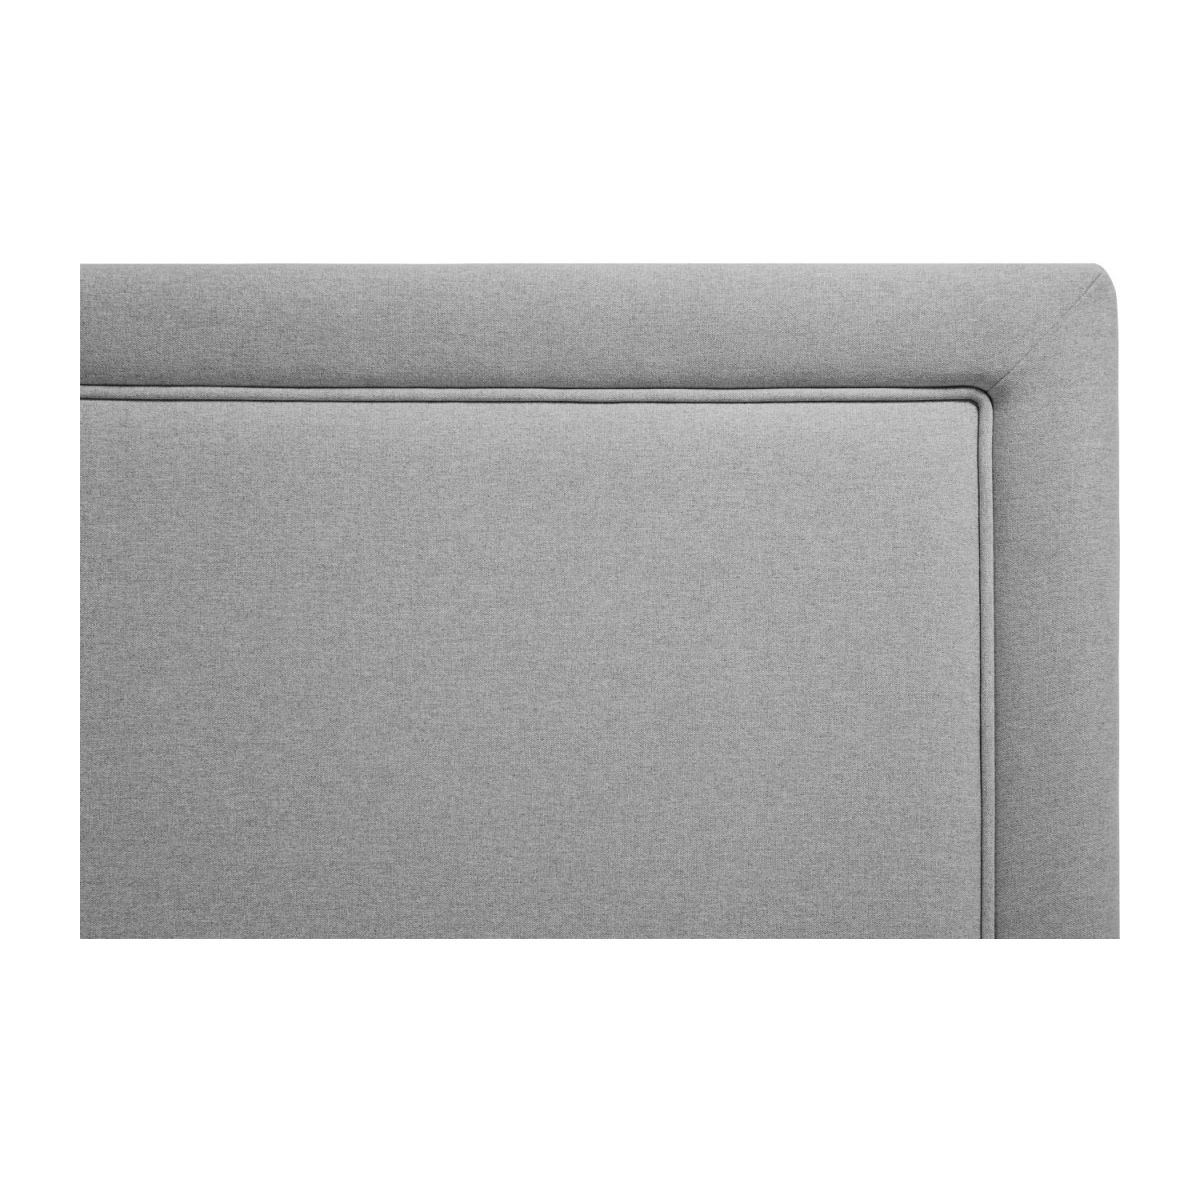 Headboard for 140cm box spring in fabric, mouse-grey n°5